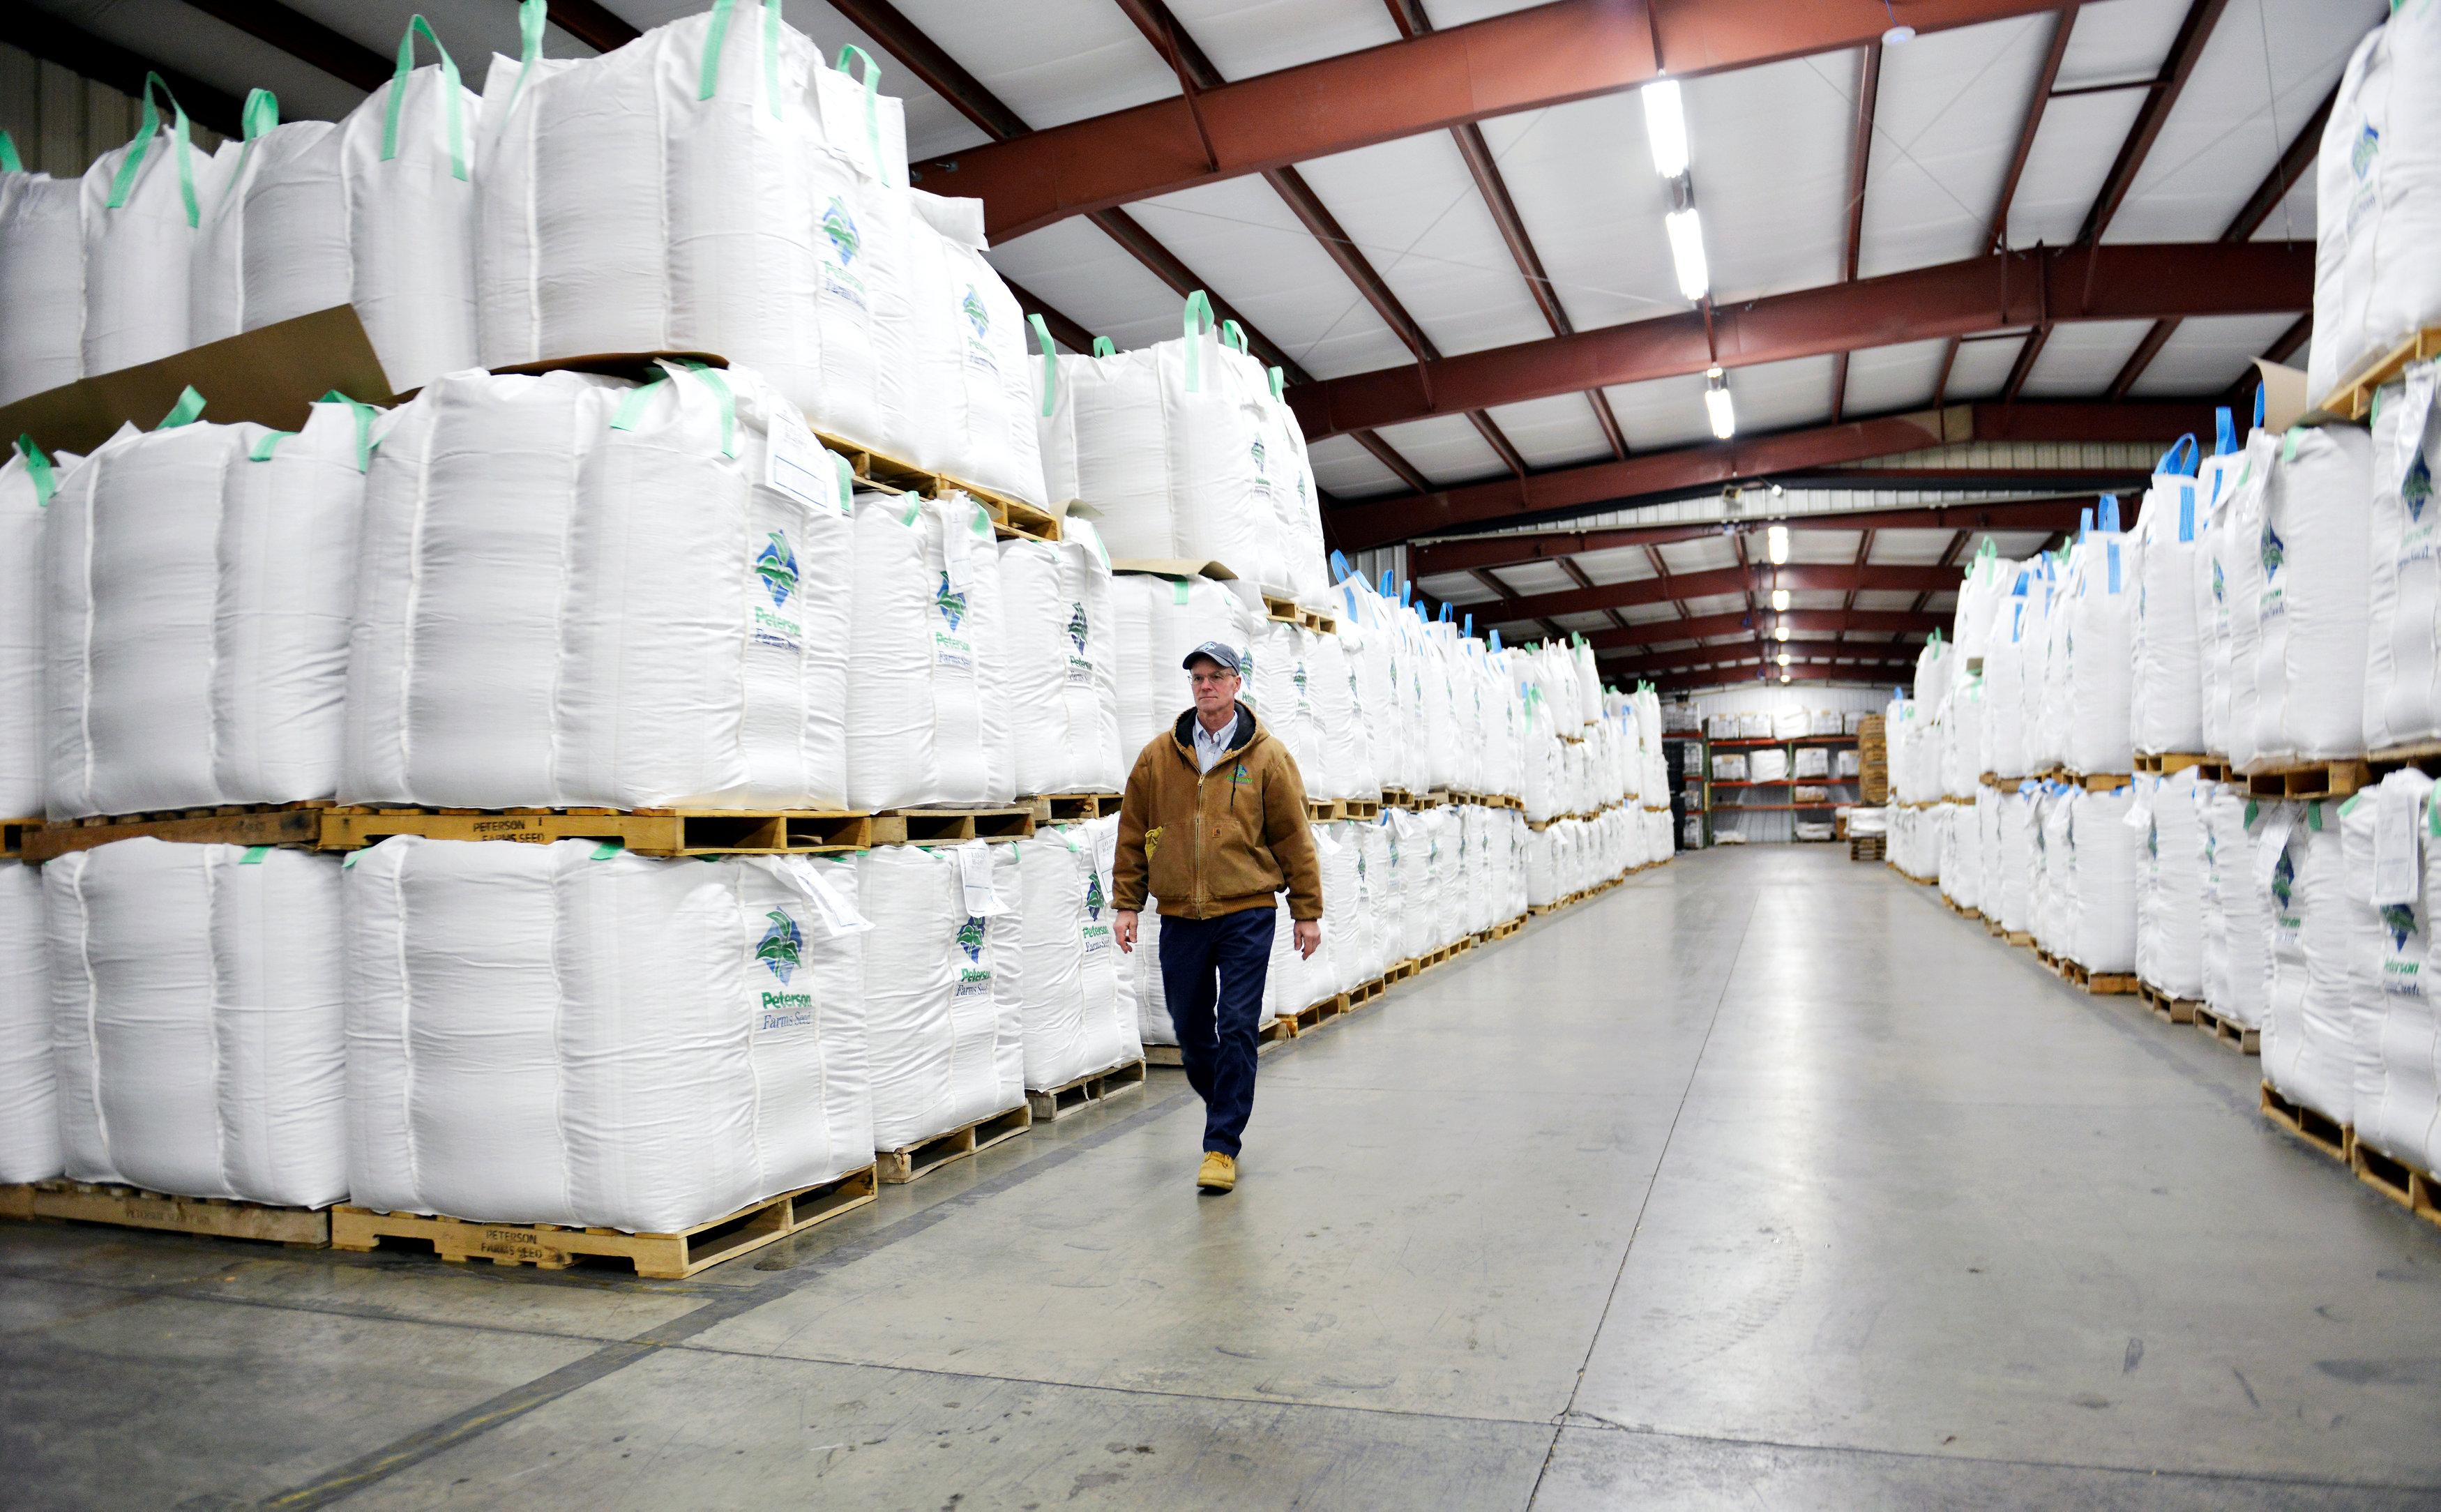 Battle of the beans: Monsanto faces a fight for soy market